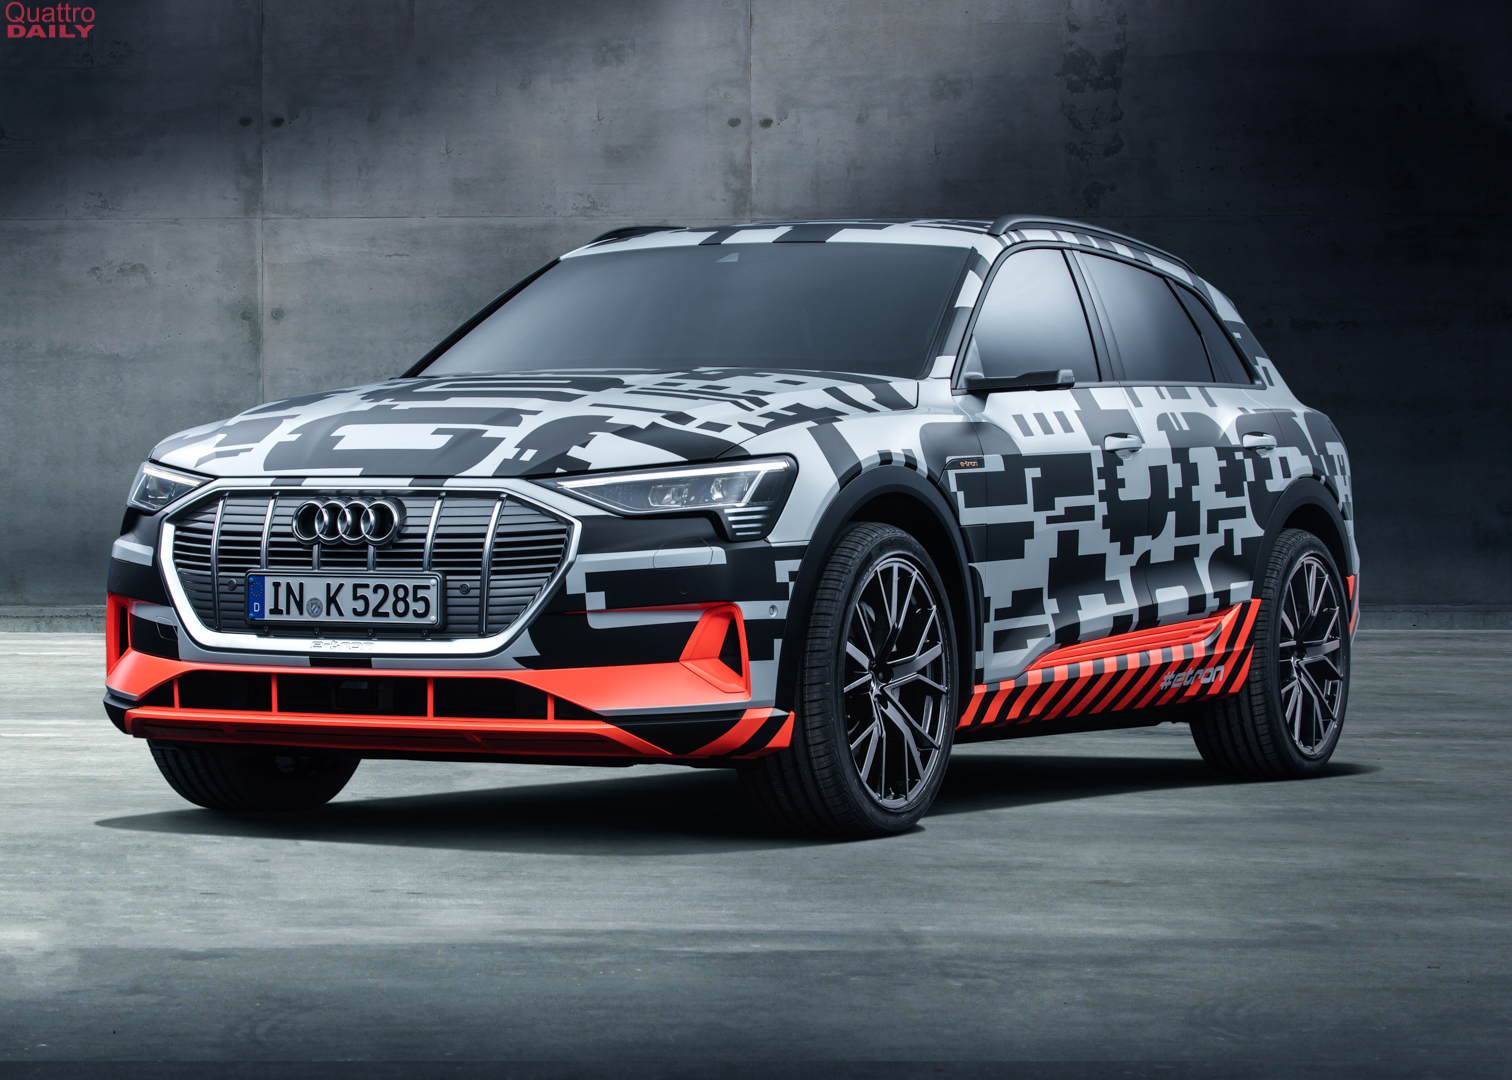 SPIED: Audi e-tron Quattro caught testing at the Nurburgring